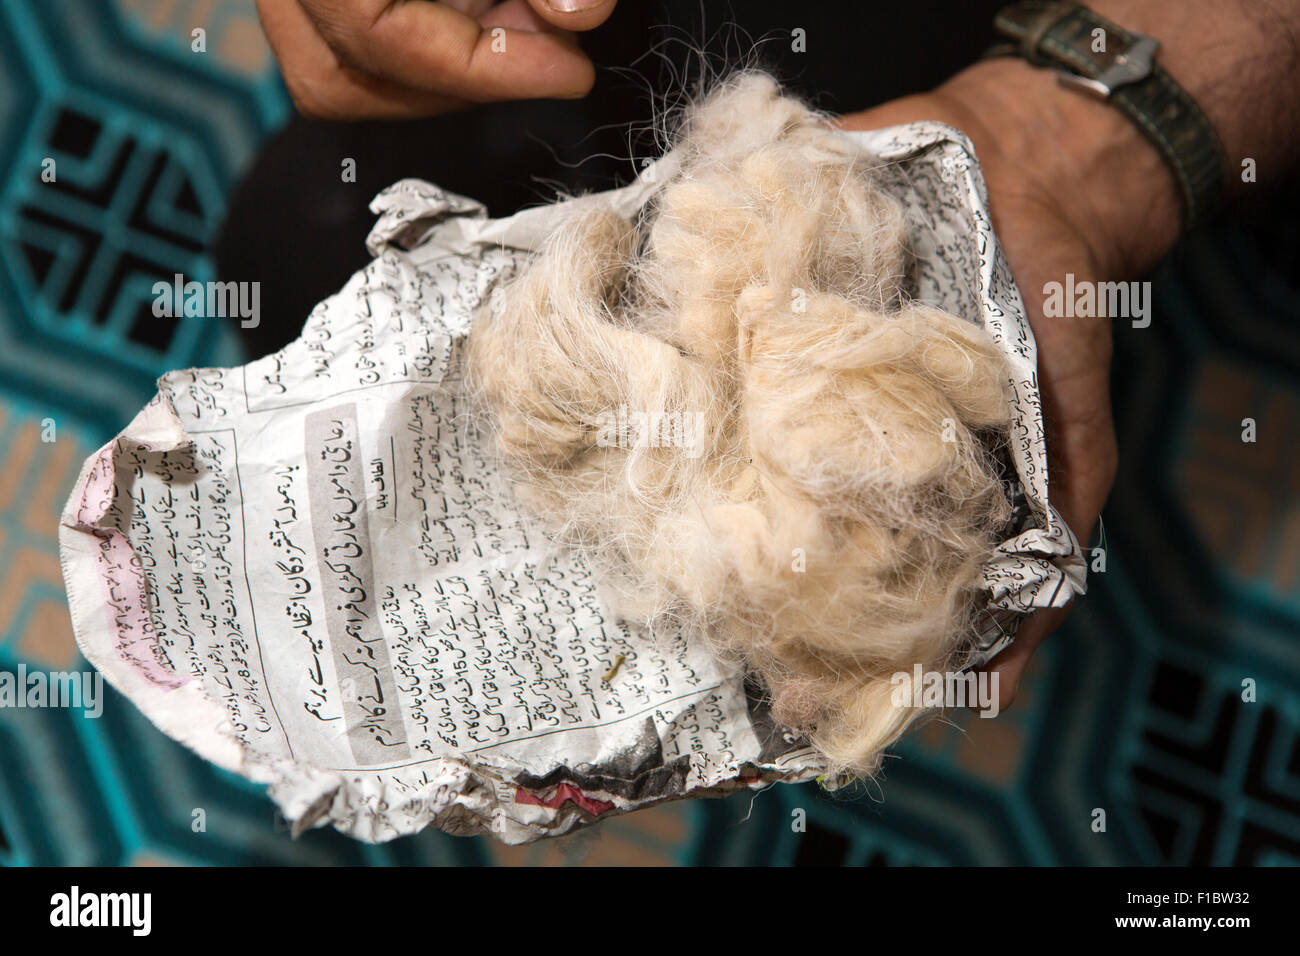 India, Jammu & Kashmir, Srinagar, unprocessed raw pashmina wool wrapped in Kashmiri language newspaper - Stock Image